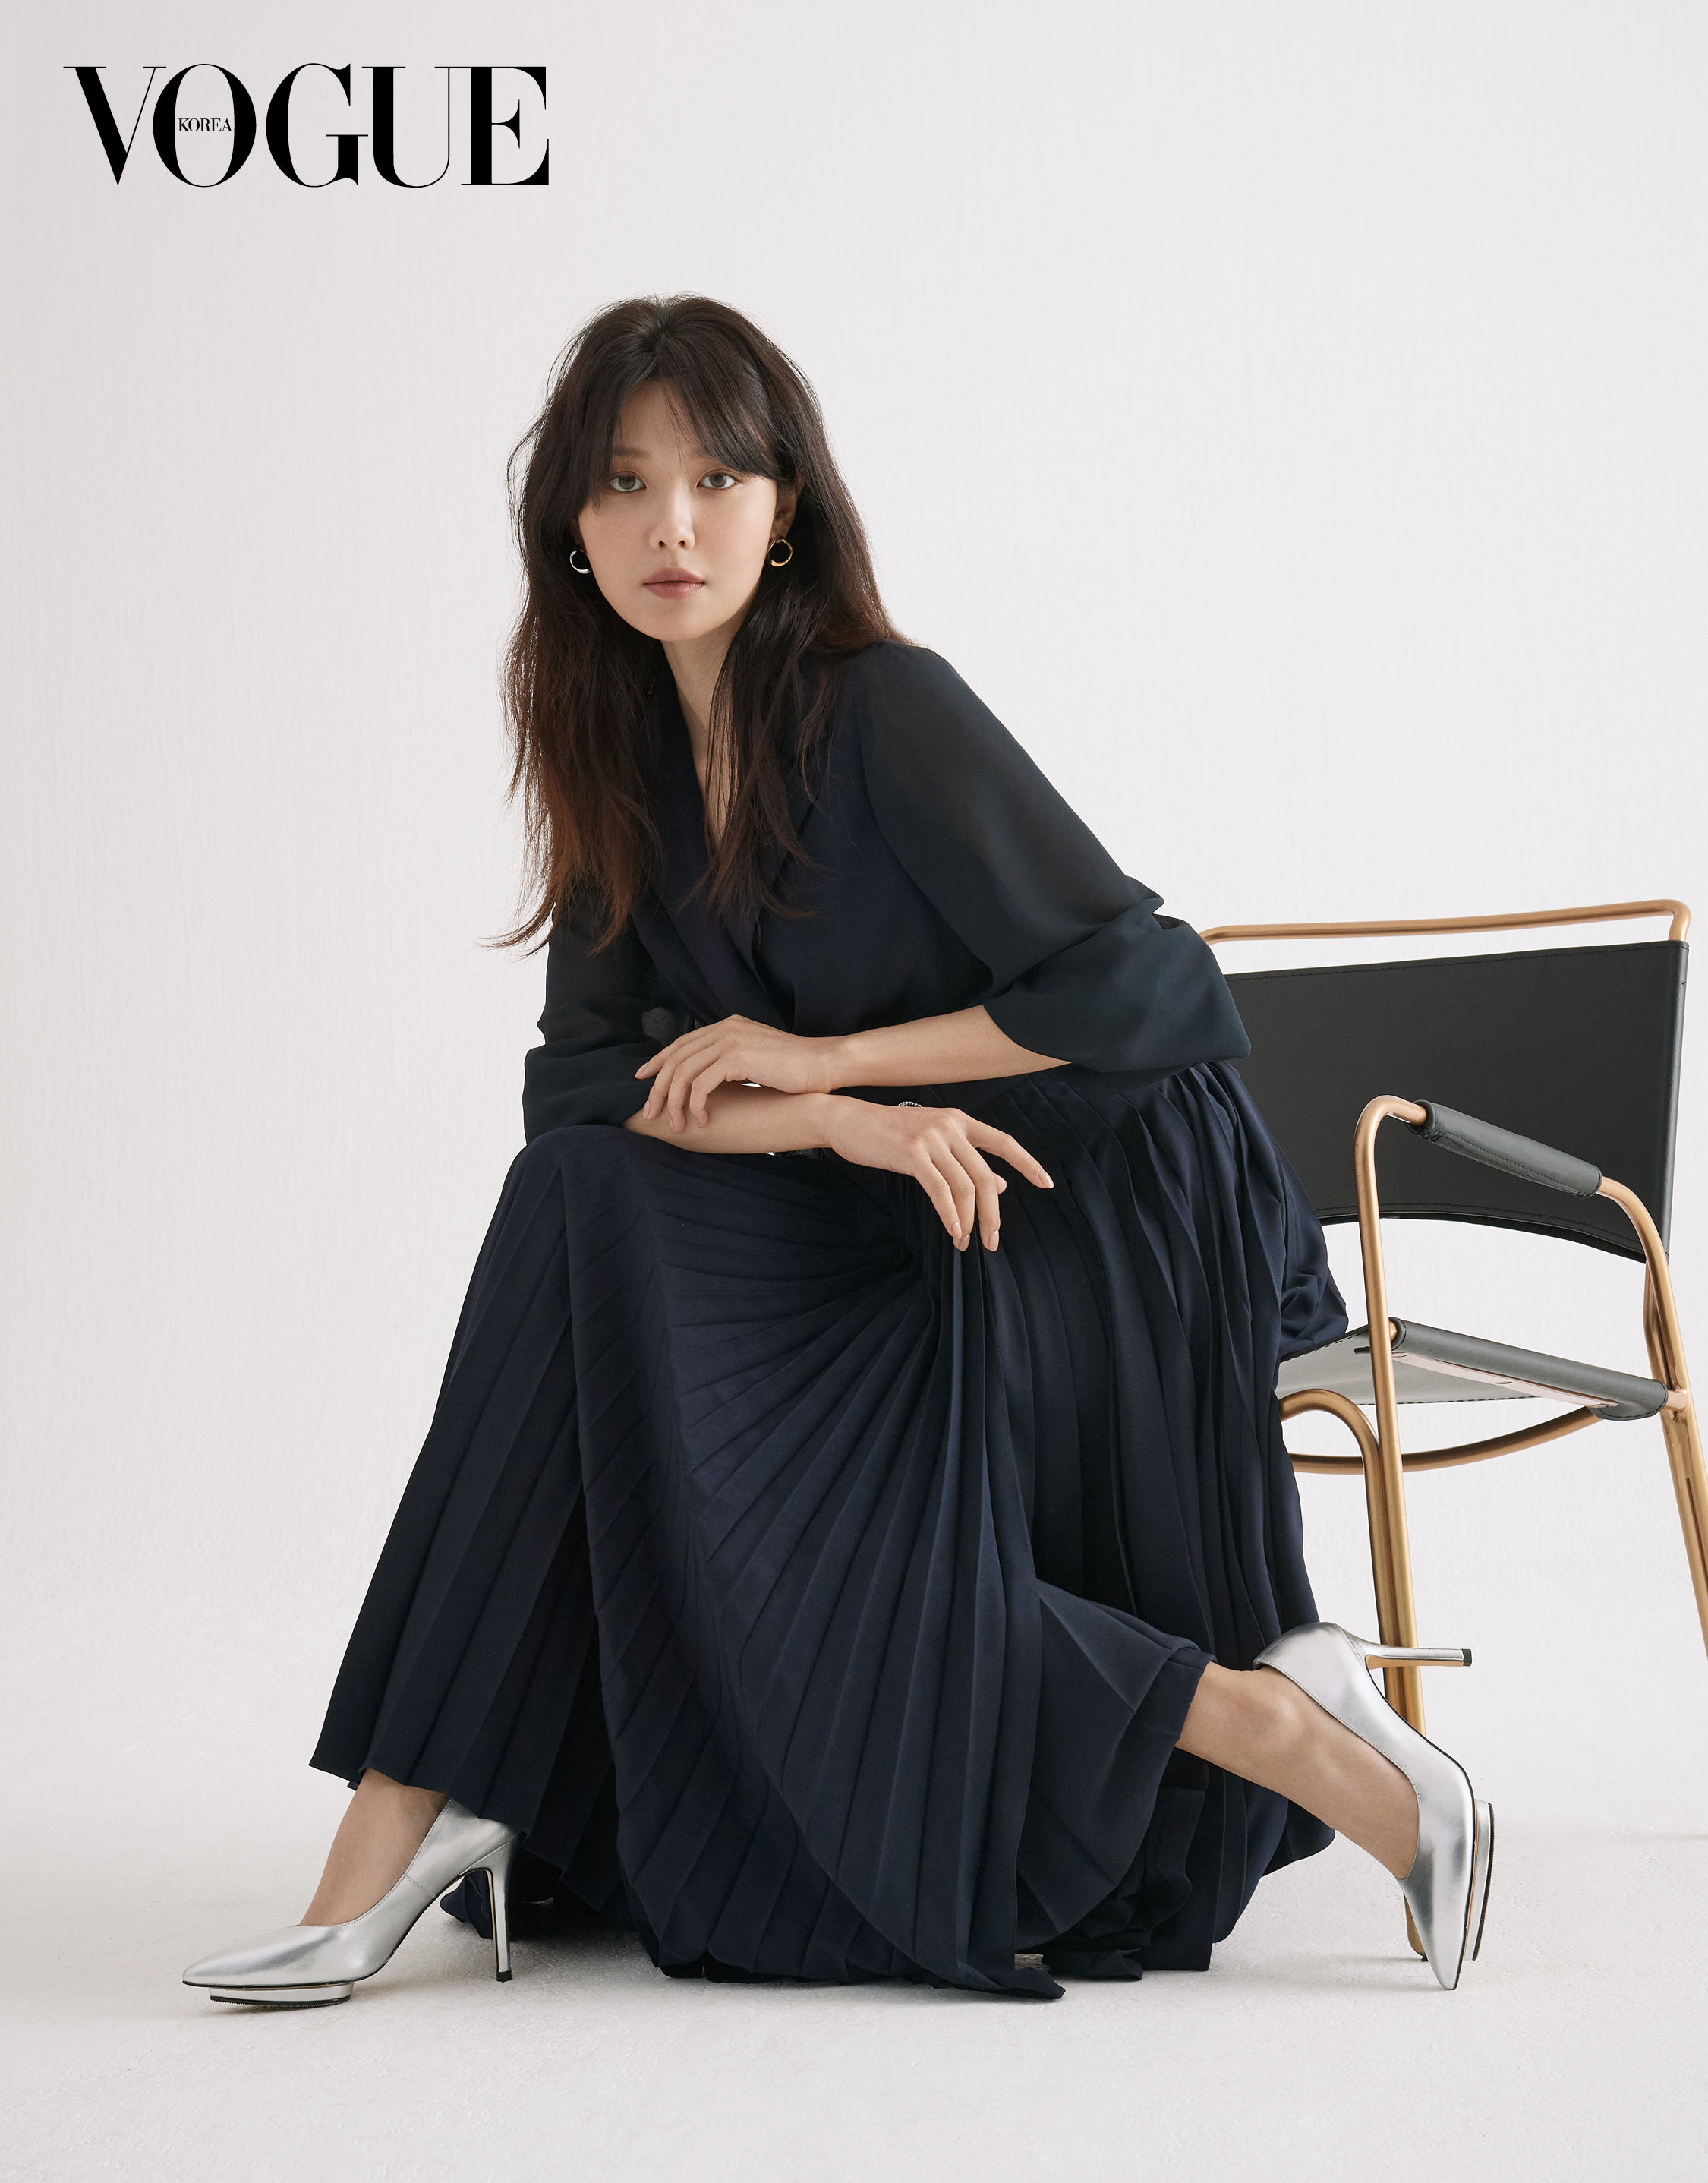 Sooyoung – 2021 April, Vogue Magazine